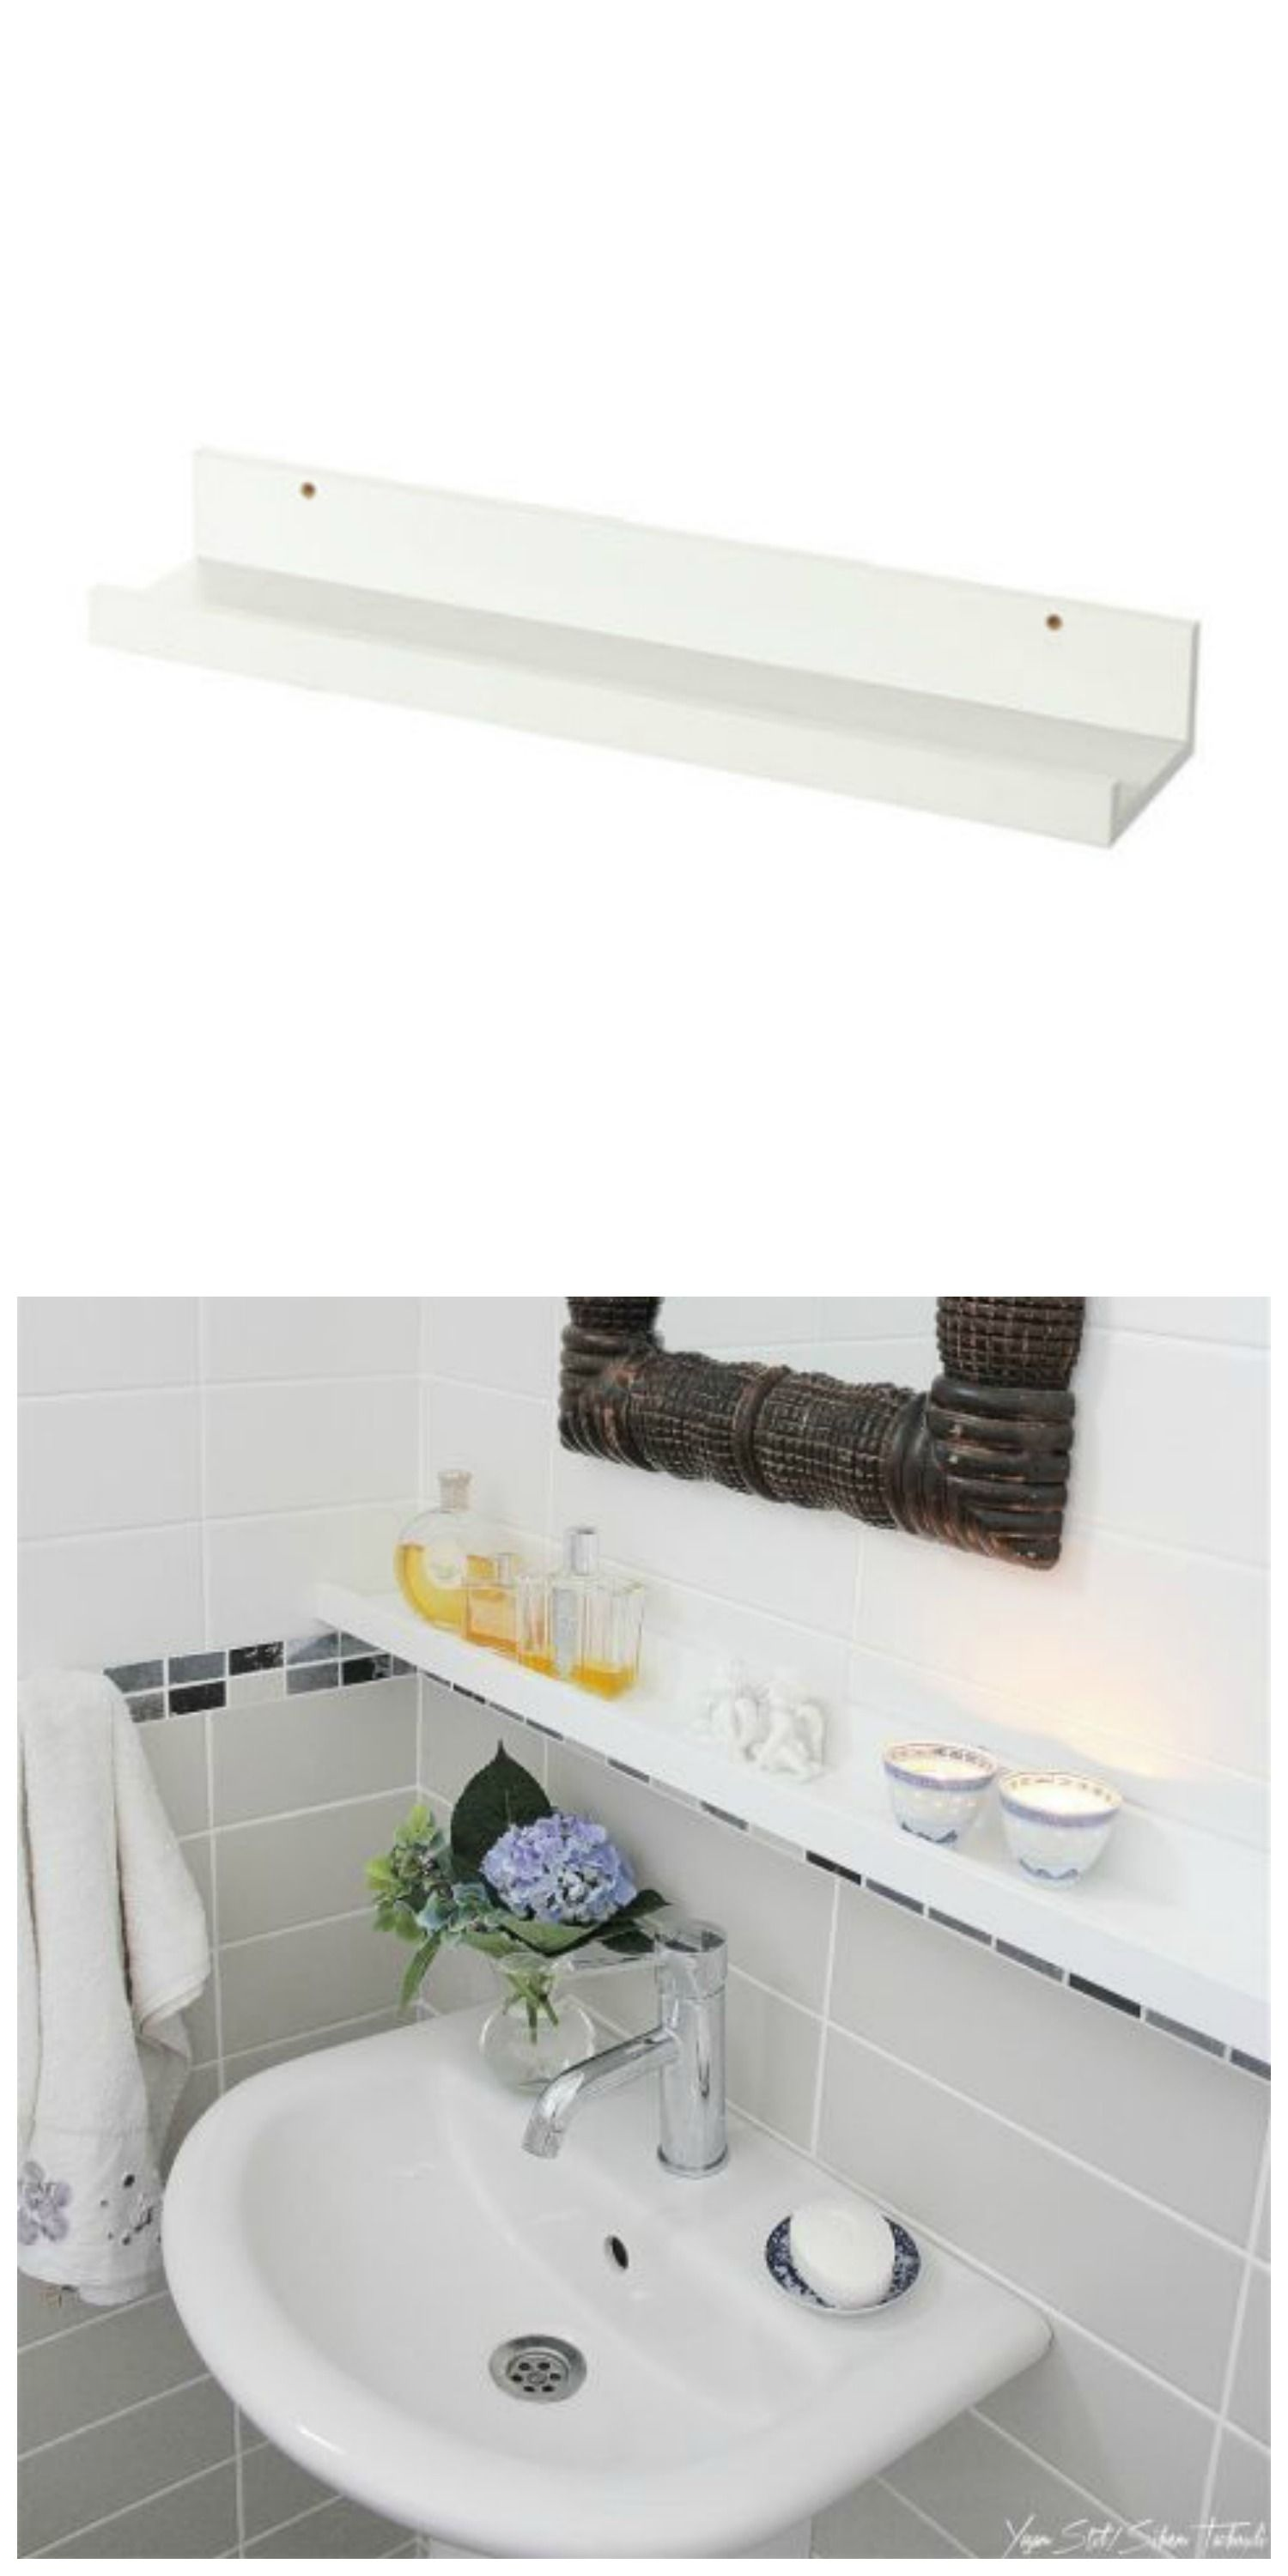 The Mosslanda Picture Ledge Makes For Modern Bathroom Storage In This IKEA Hack